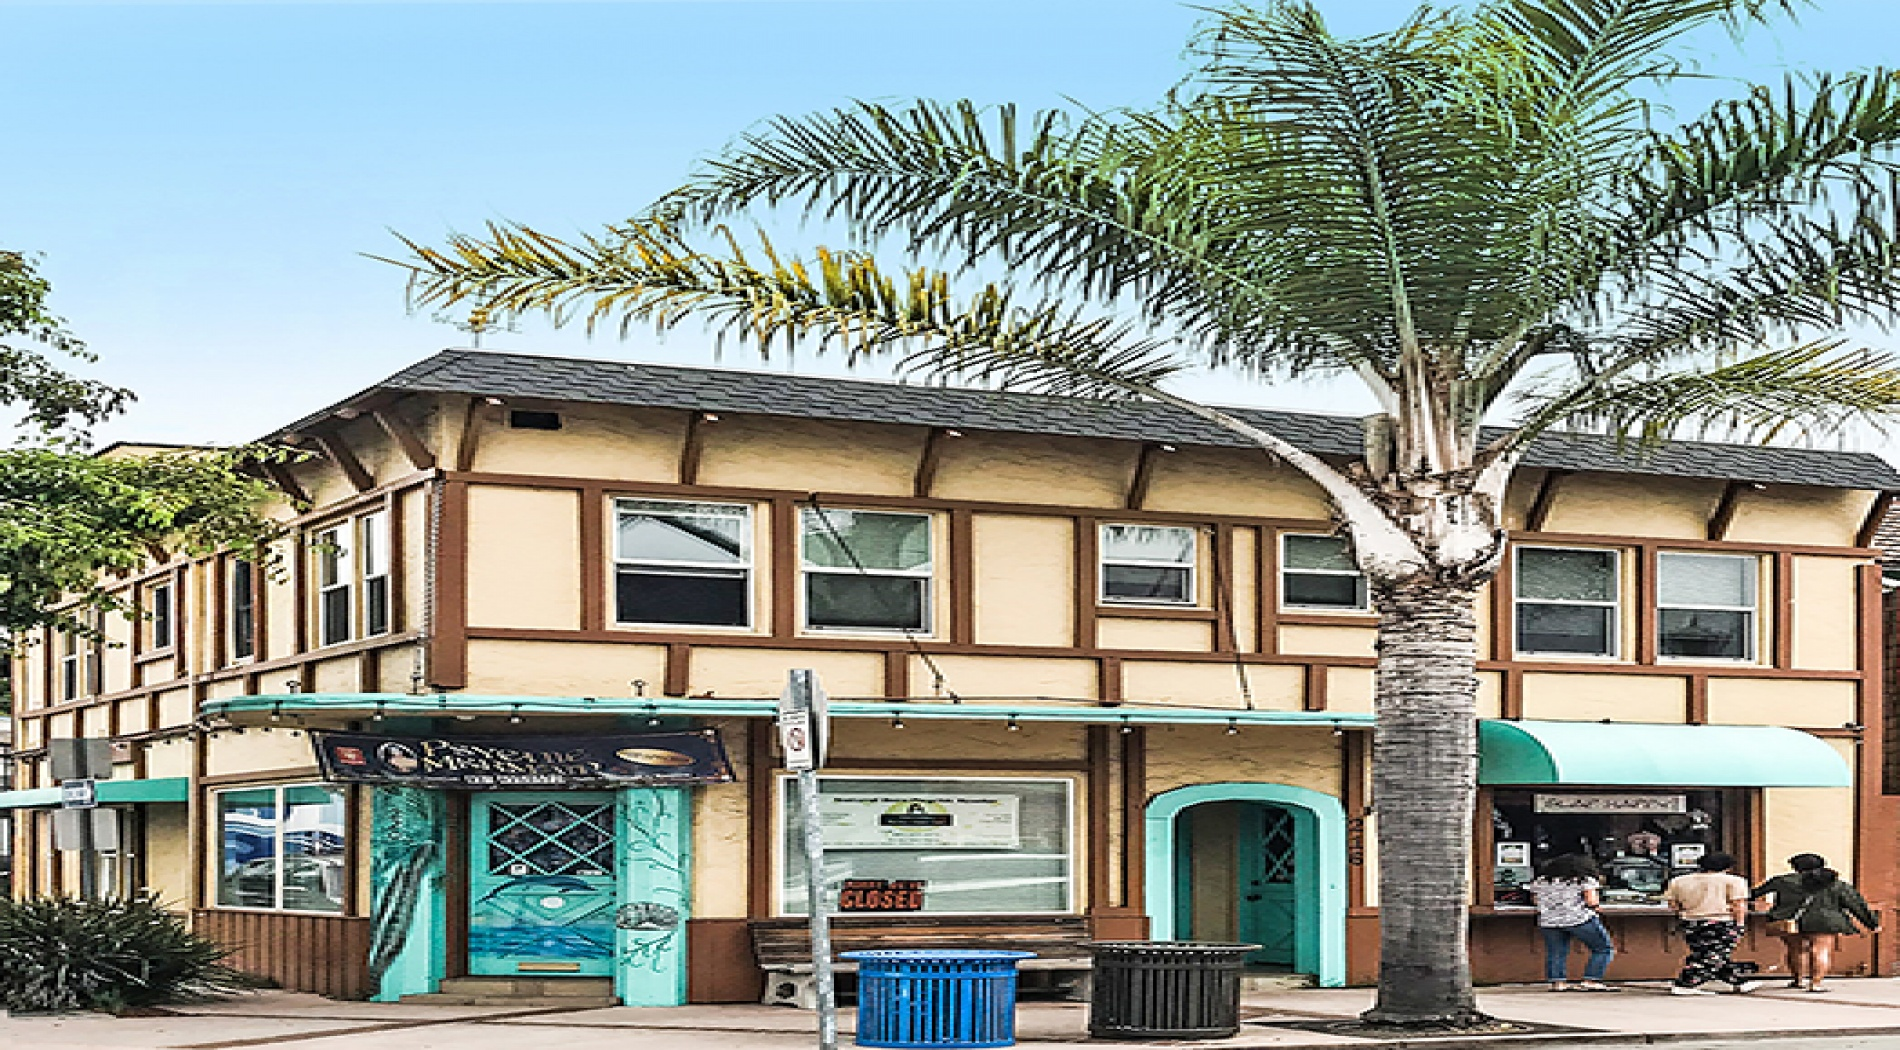 216 Capitola Ave, Capitola 95010, ,Retail,For Sale,Capitola,1006